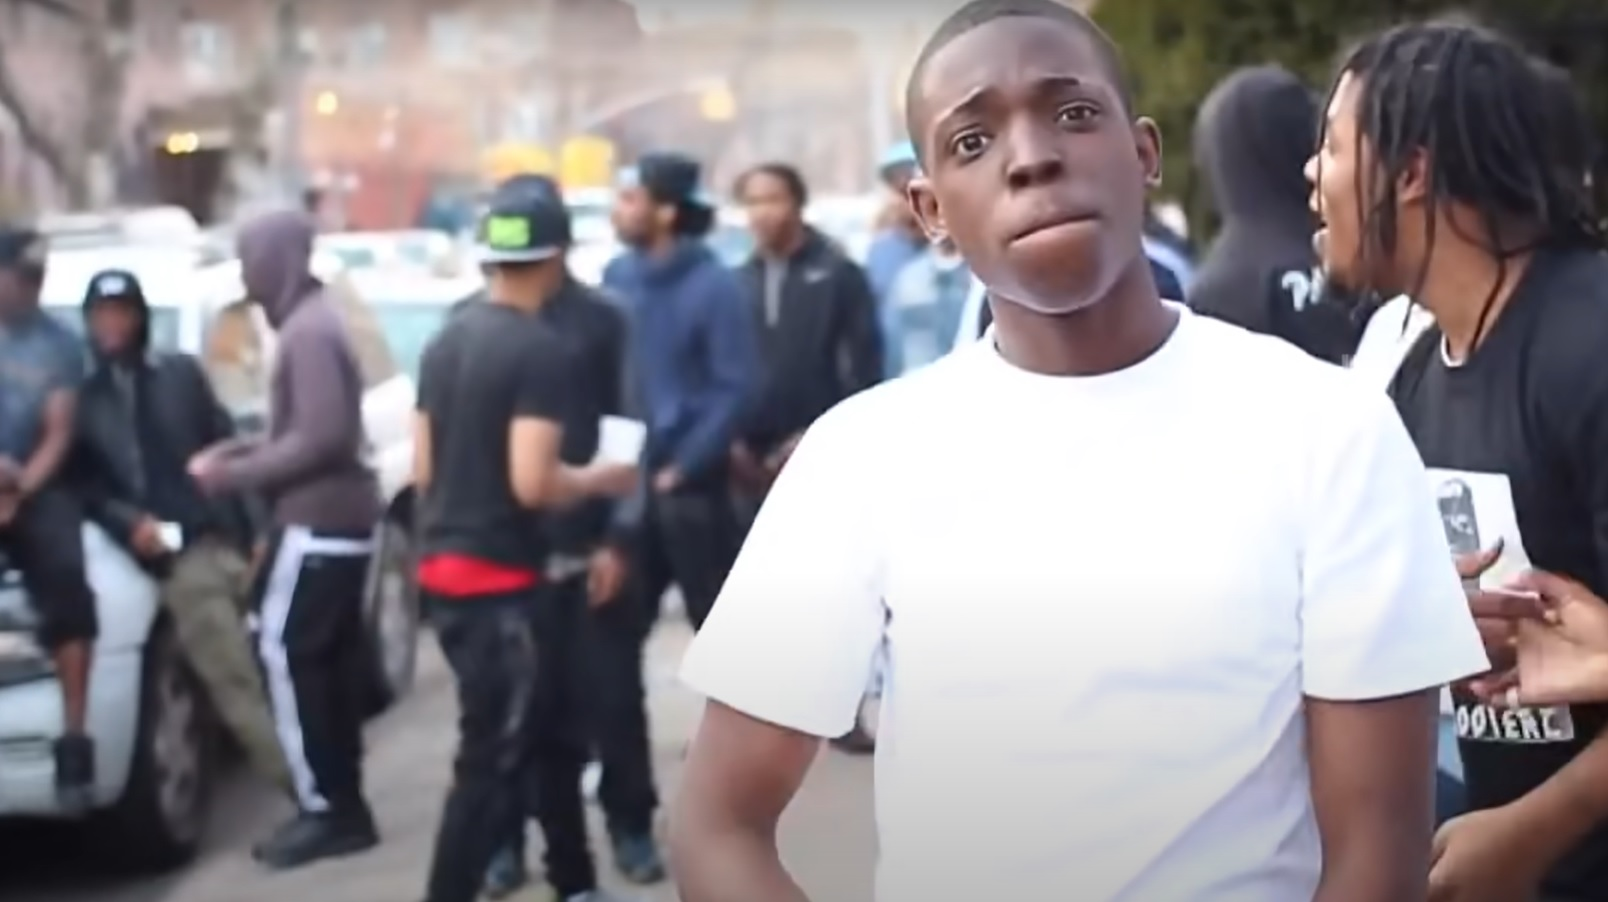 Bobby Shmurda - Hot N*gga (Official Music Video)